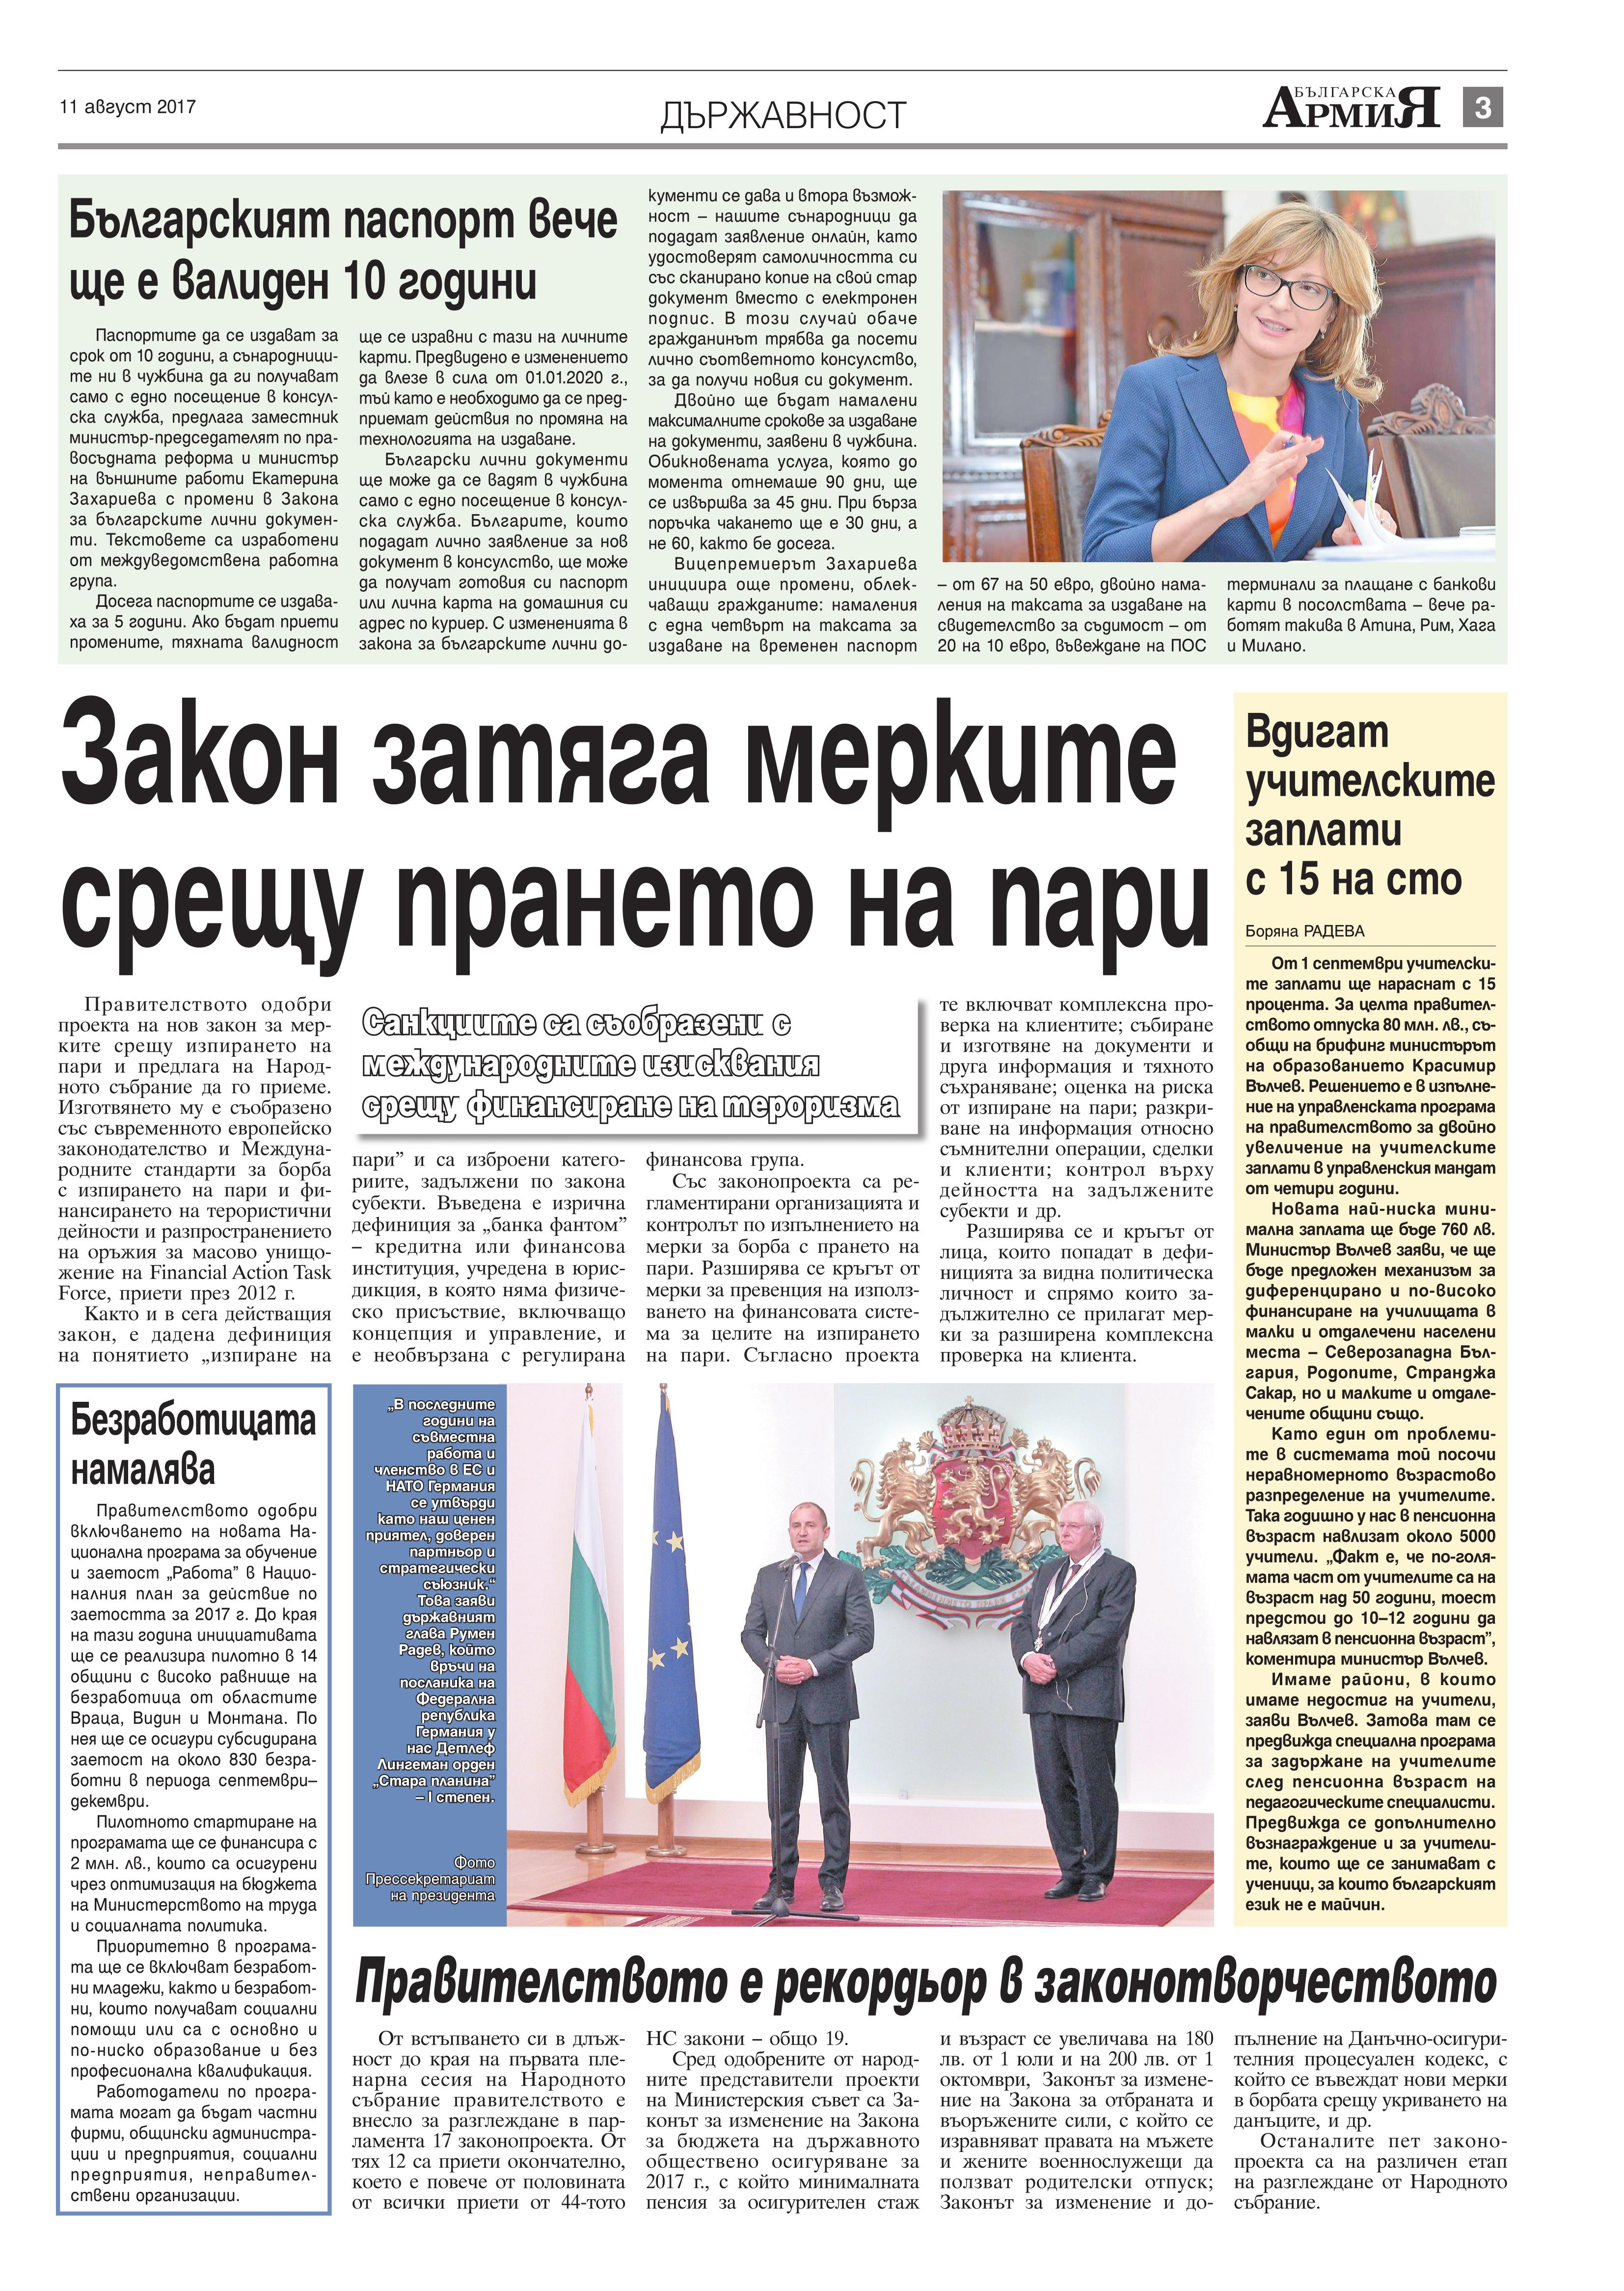 http://armymedia.bg/wp-content/uploads/2015/06/03.page1_-28.jpg